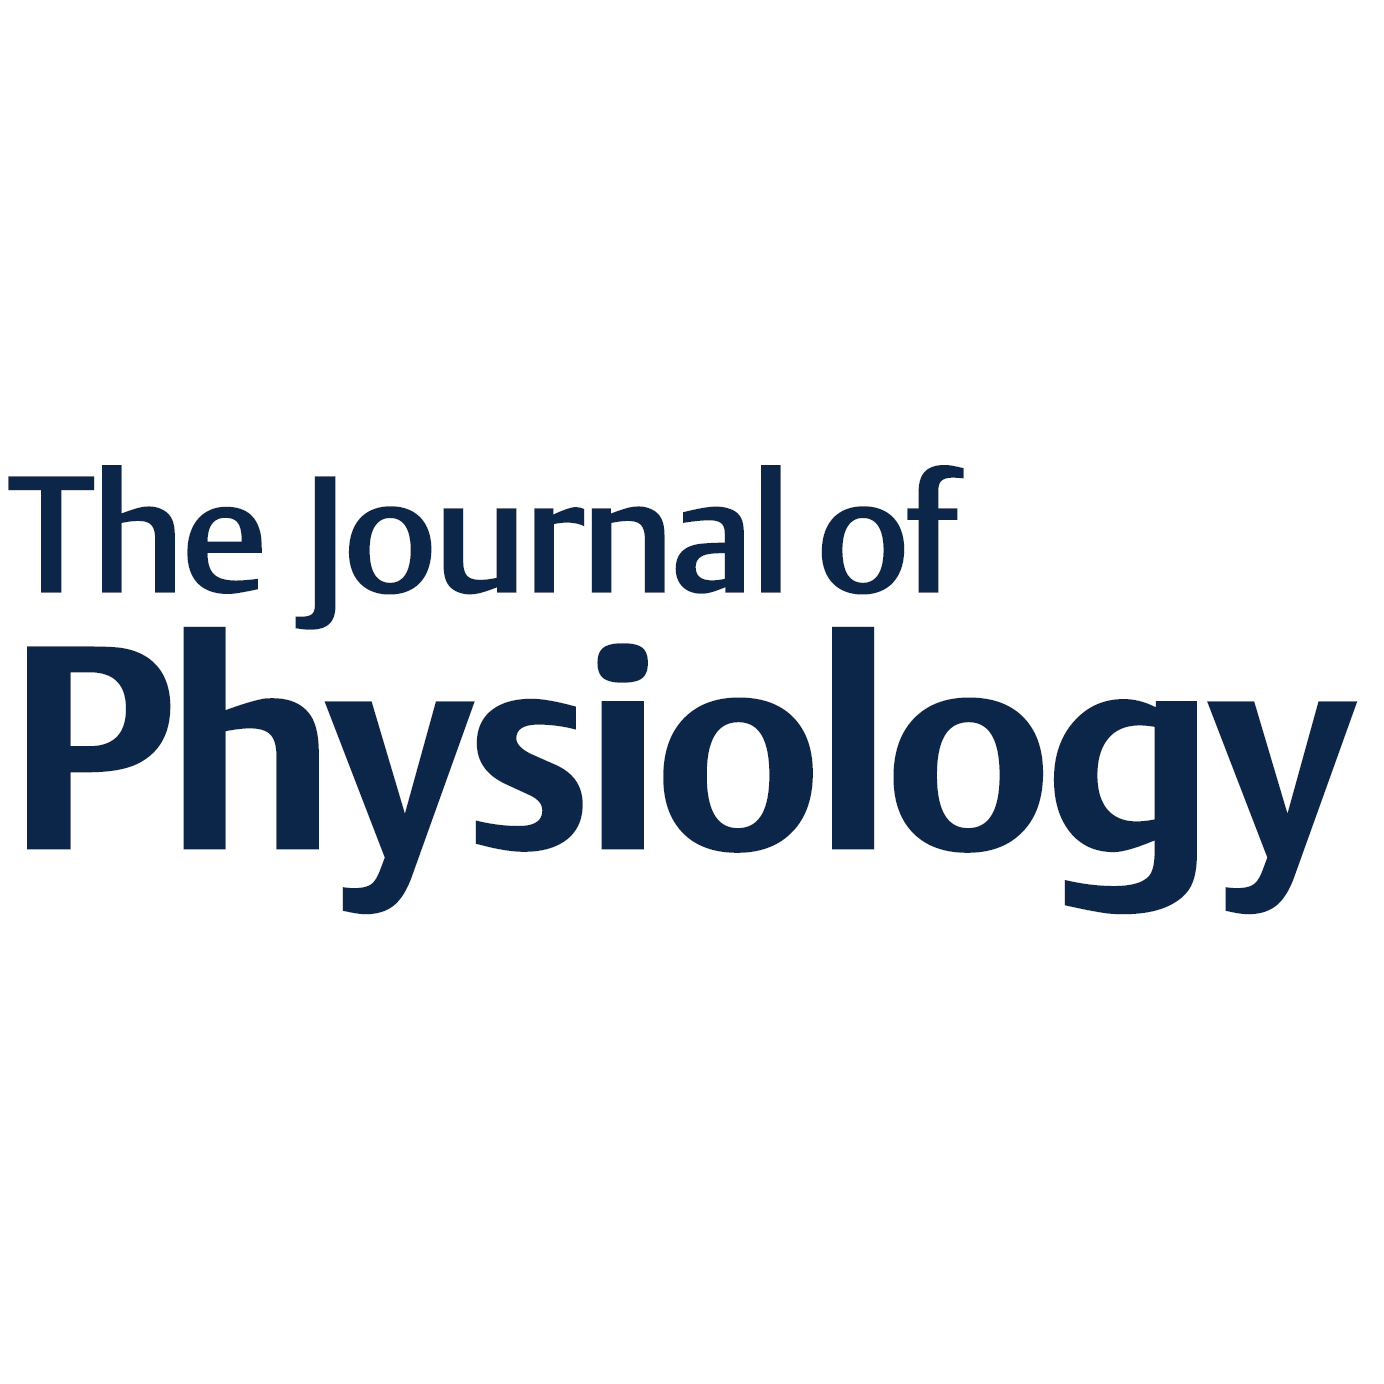 Journal of Physiology sq